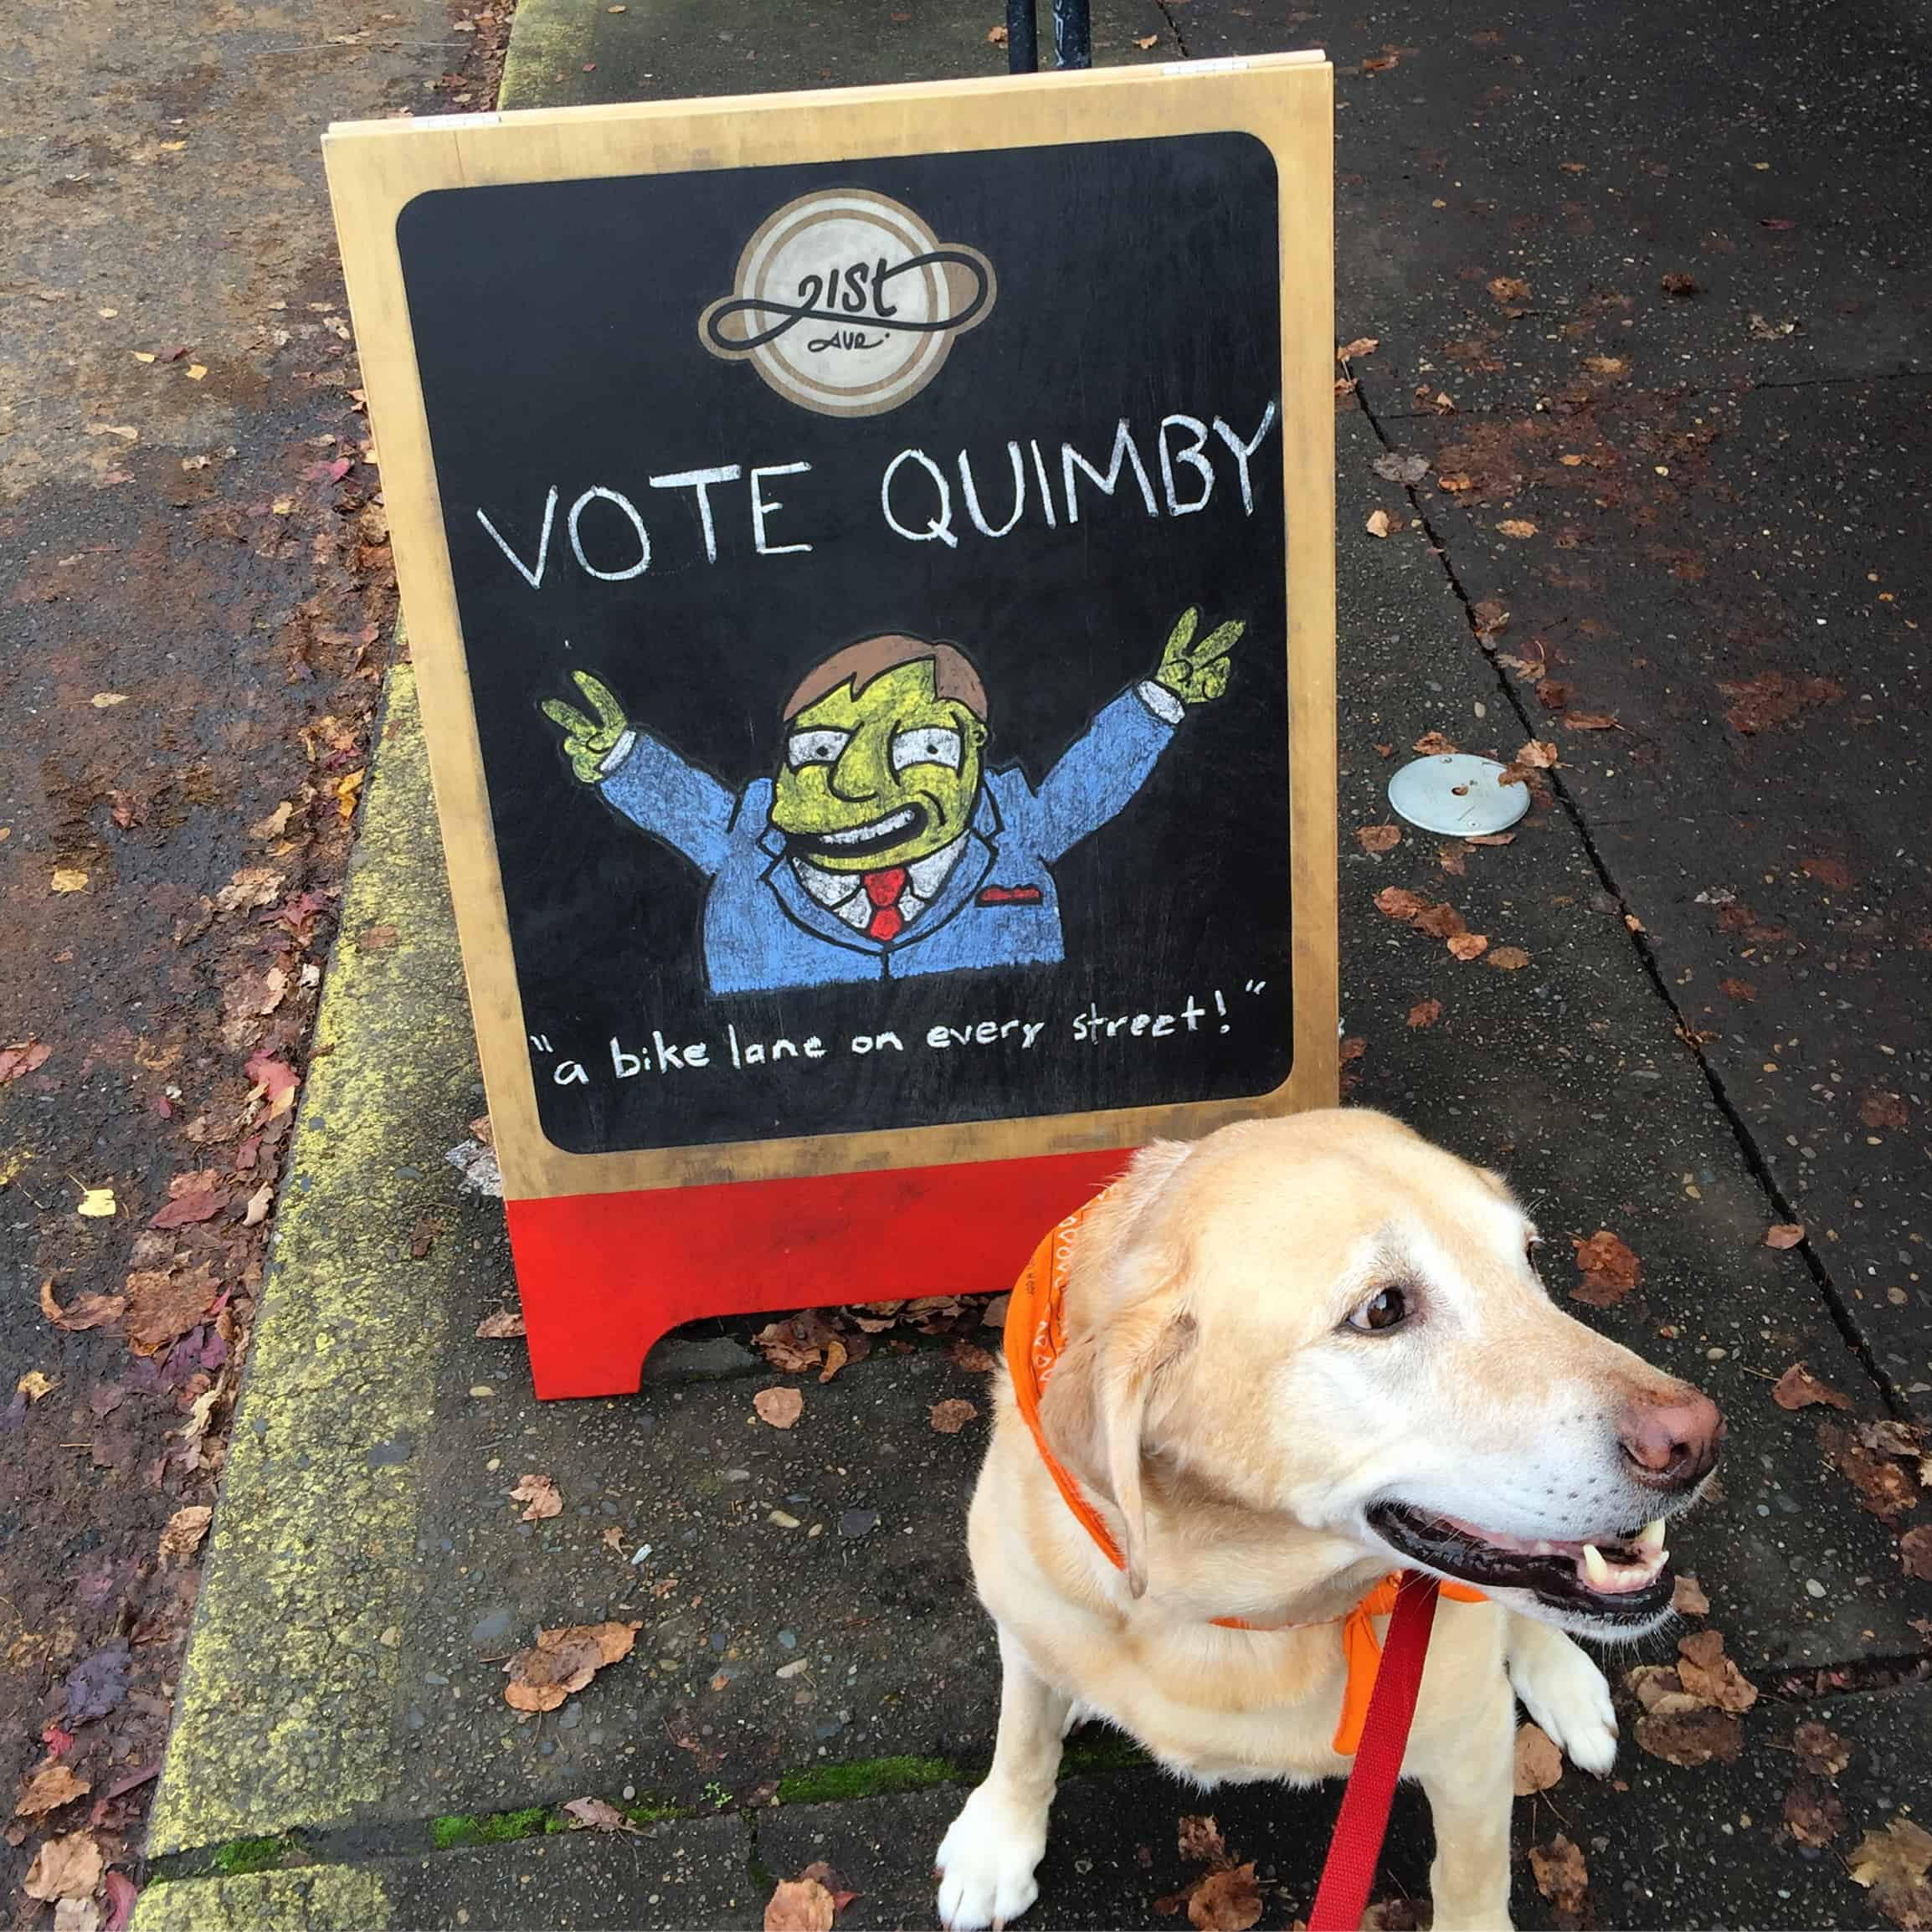 Molls told me she's voting for Quimby! #mollyriscica